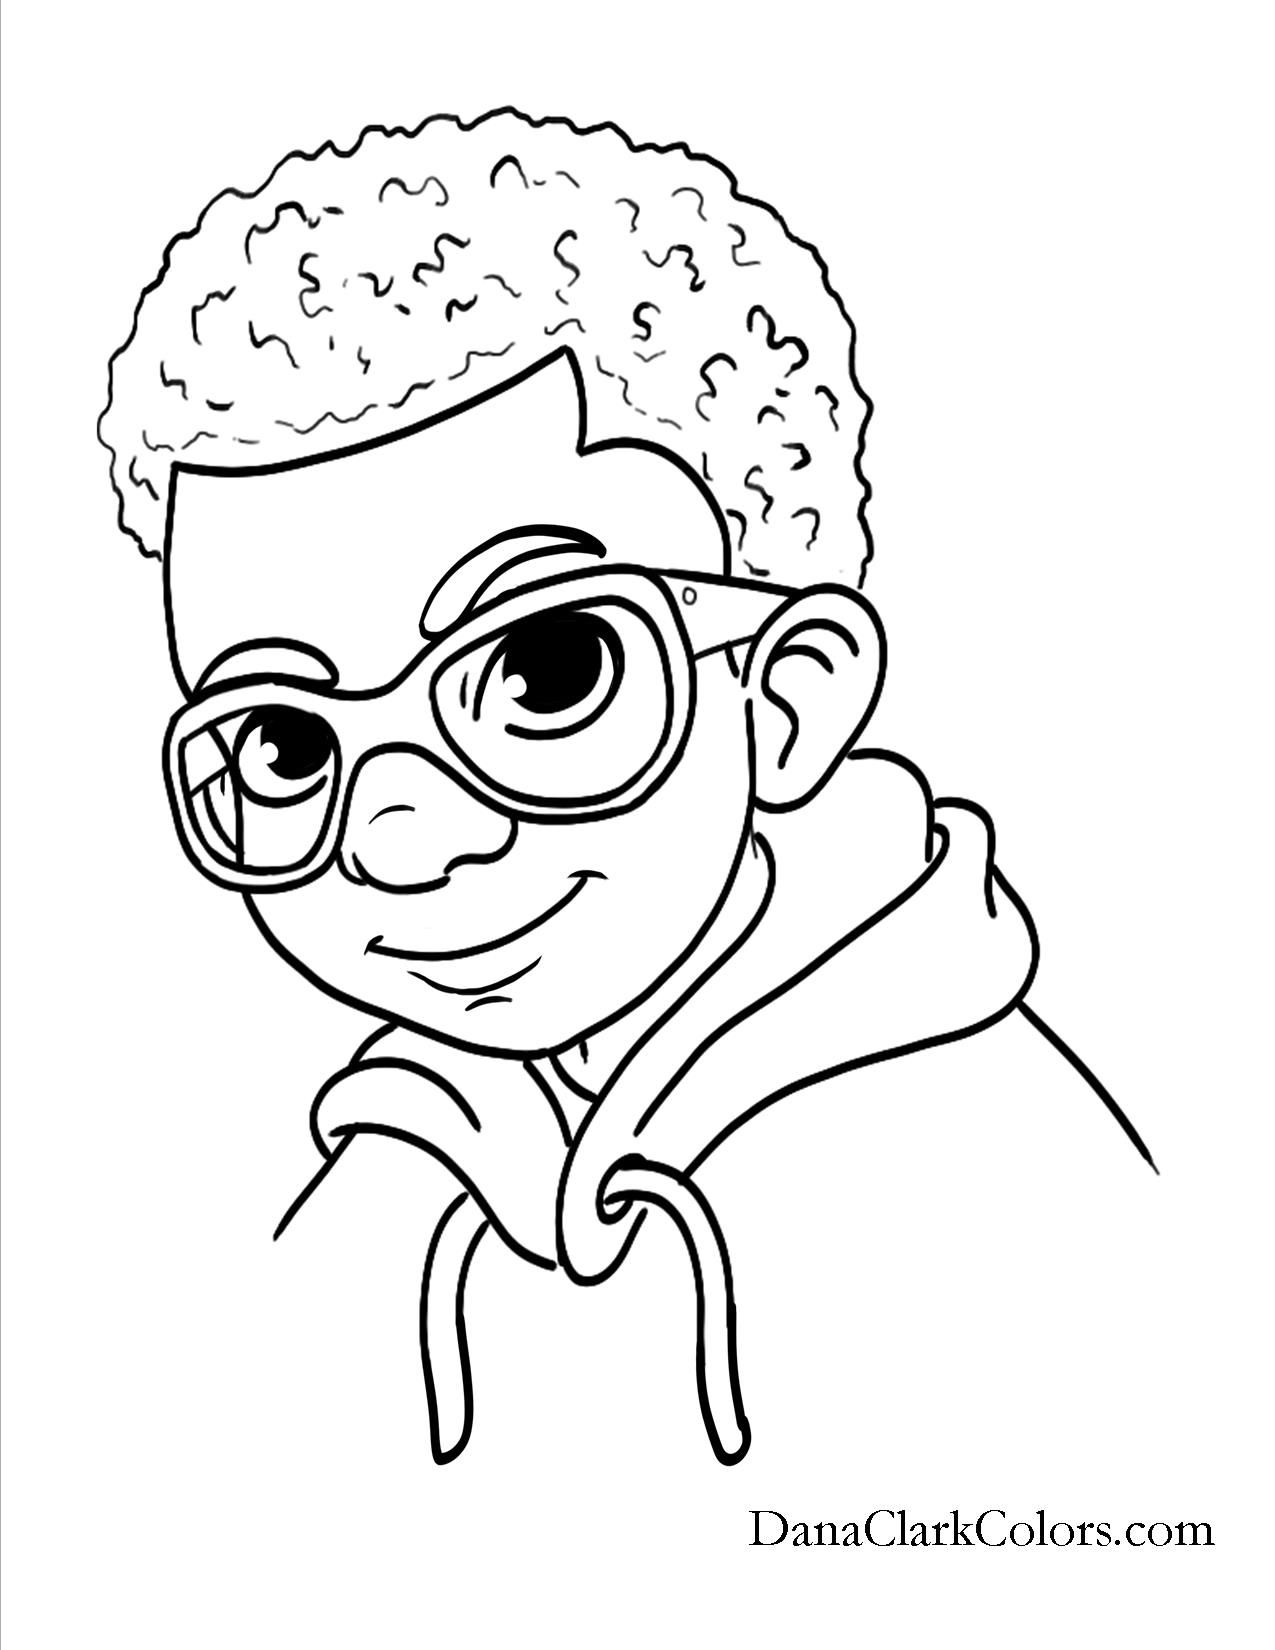 Free Coloring Pages Danaclarkcolors Com Coloring Pages For Girls Coloring Pages For Boys Coloring Books